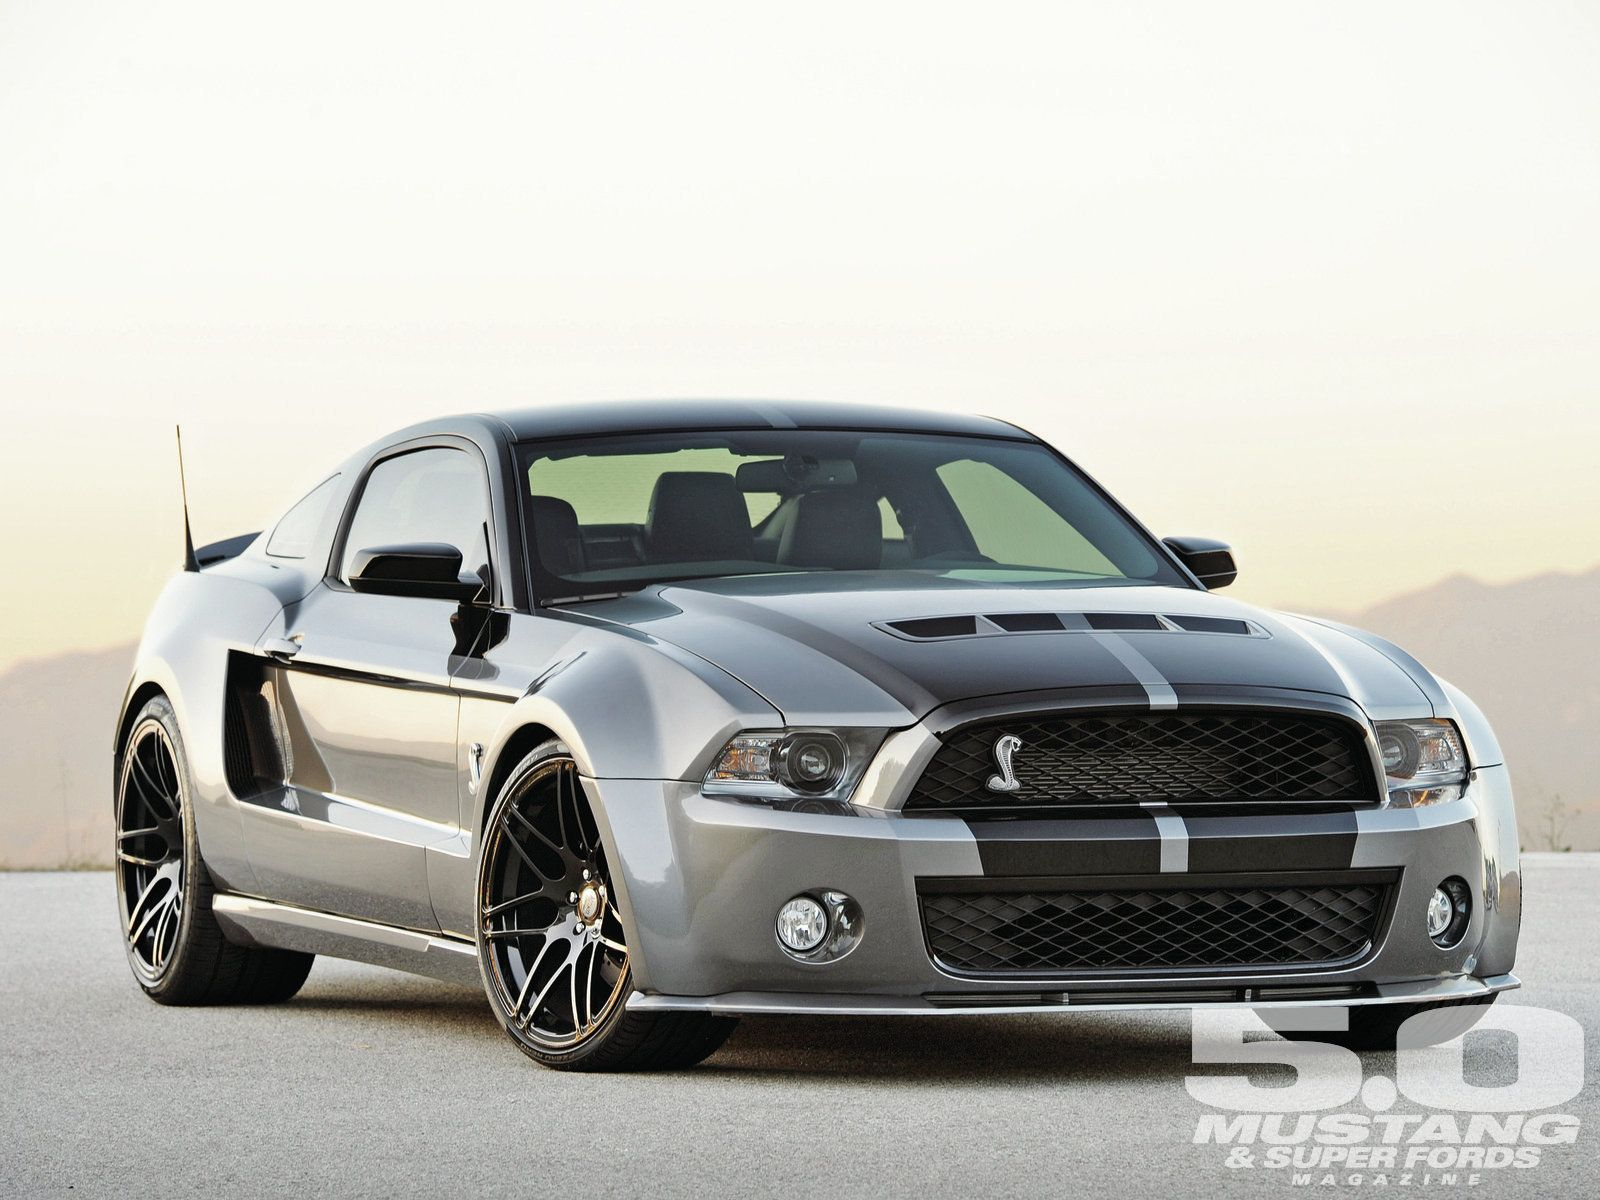 Shelby mustang with a wide body kit